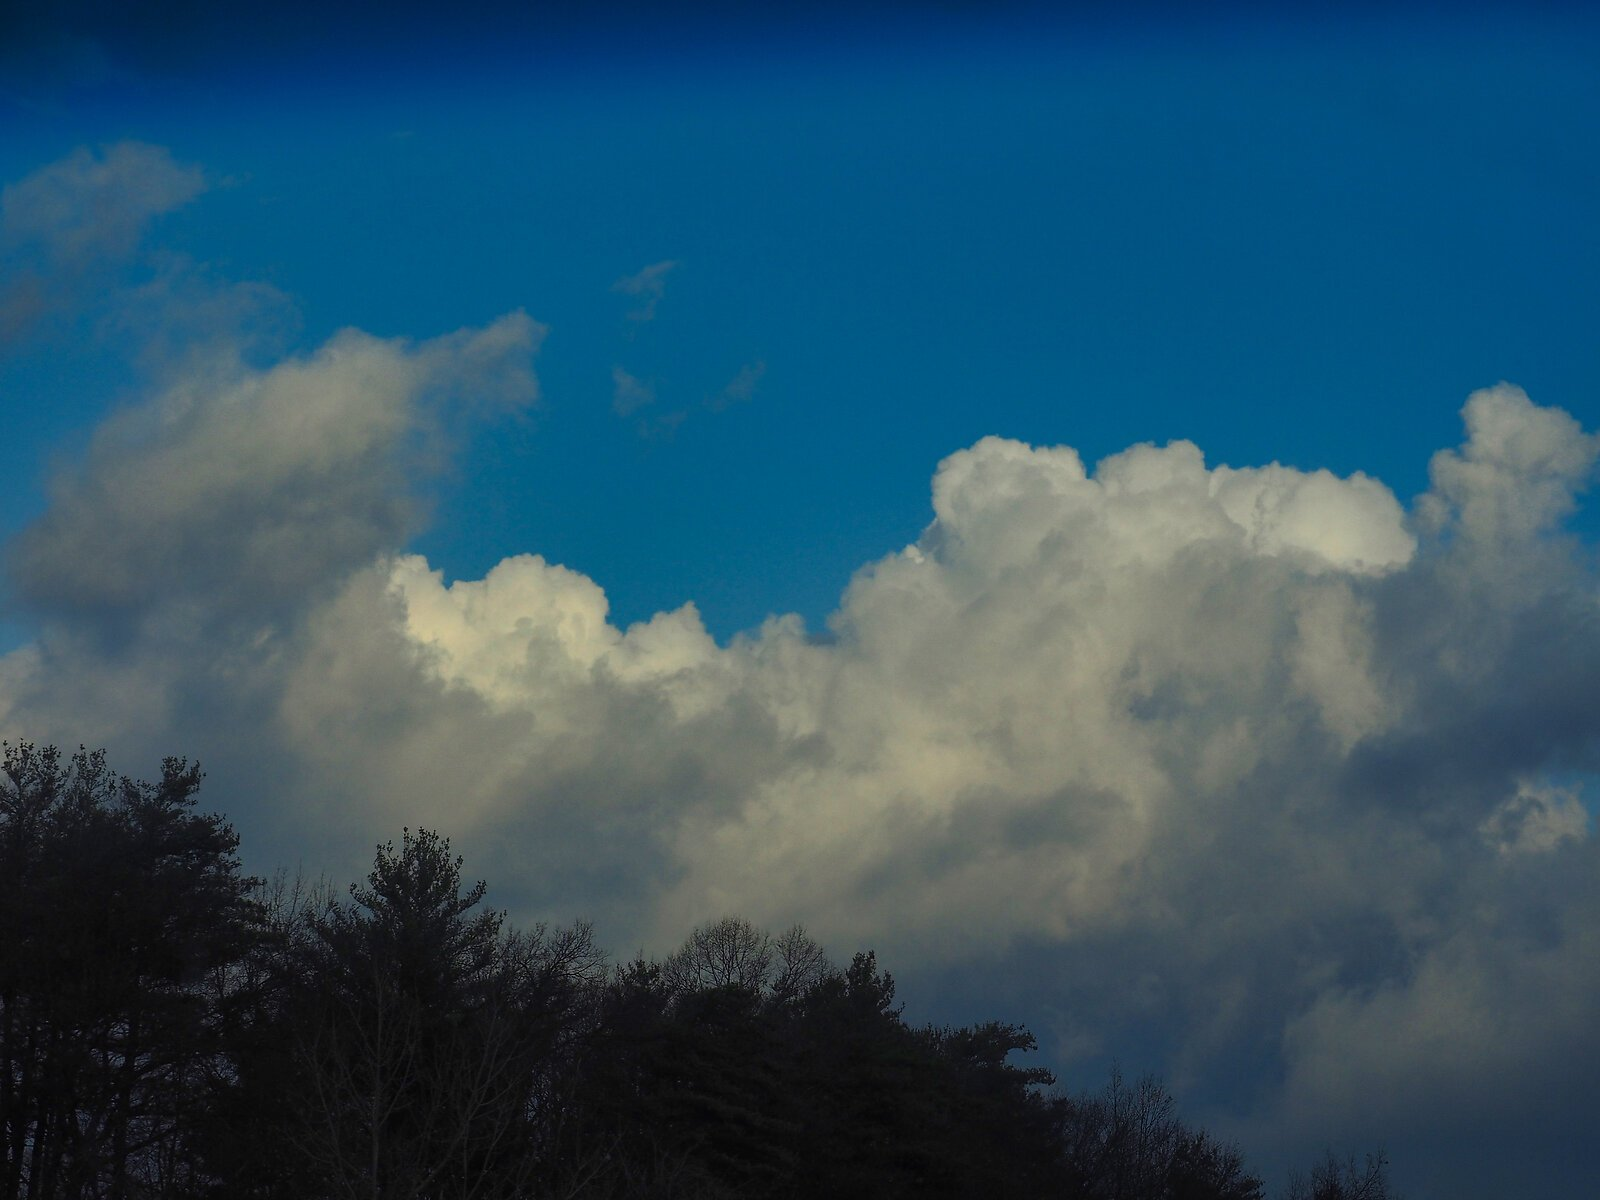 M1 Rose and alps of the sky 018 B.jpg